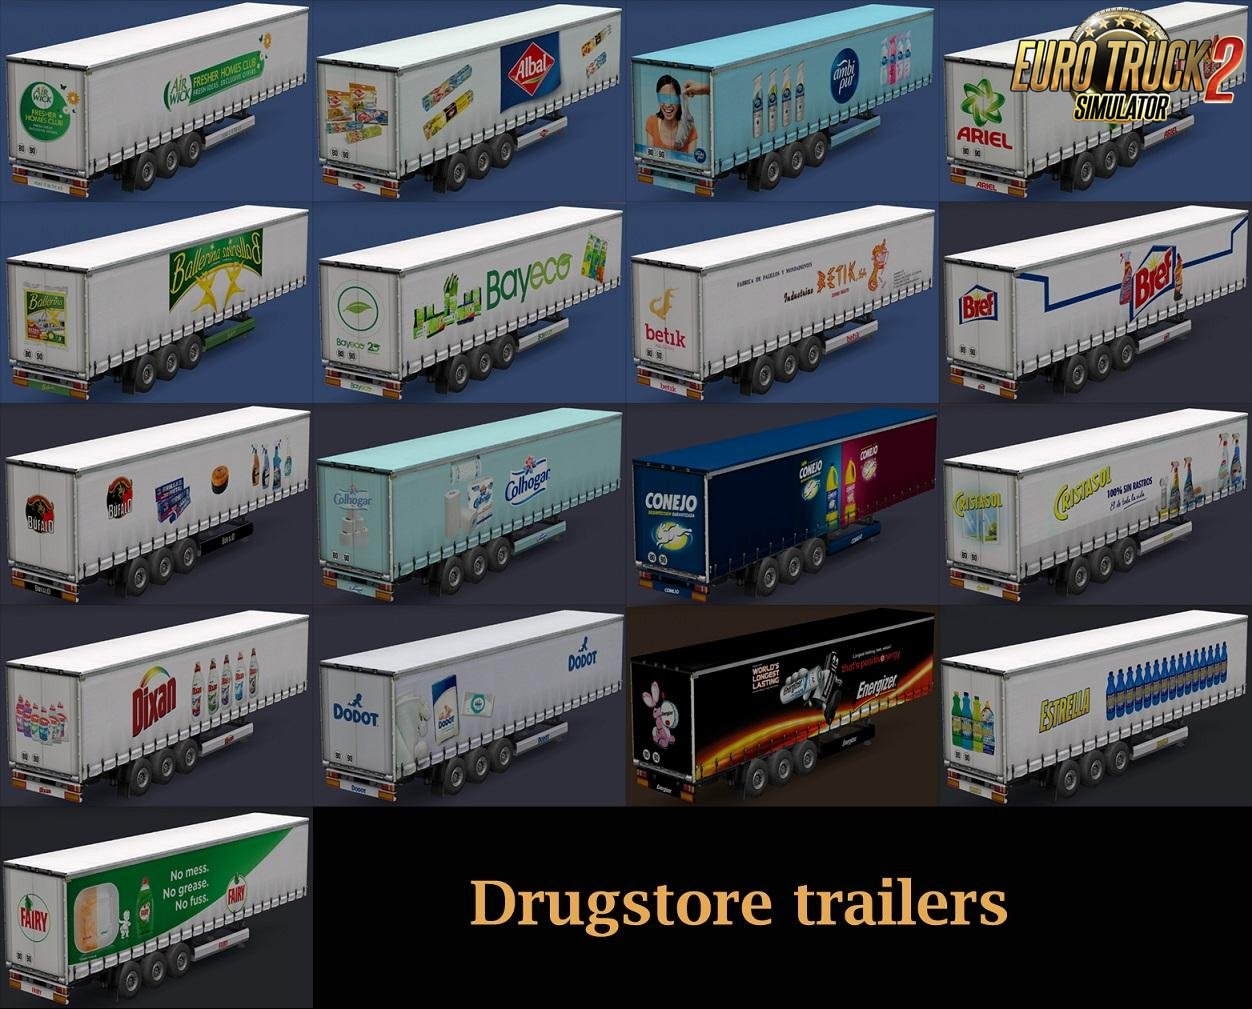 Drugstore Products Trailers v1.0 by Maryjm